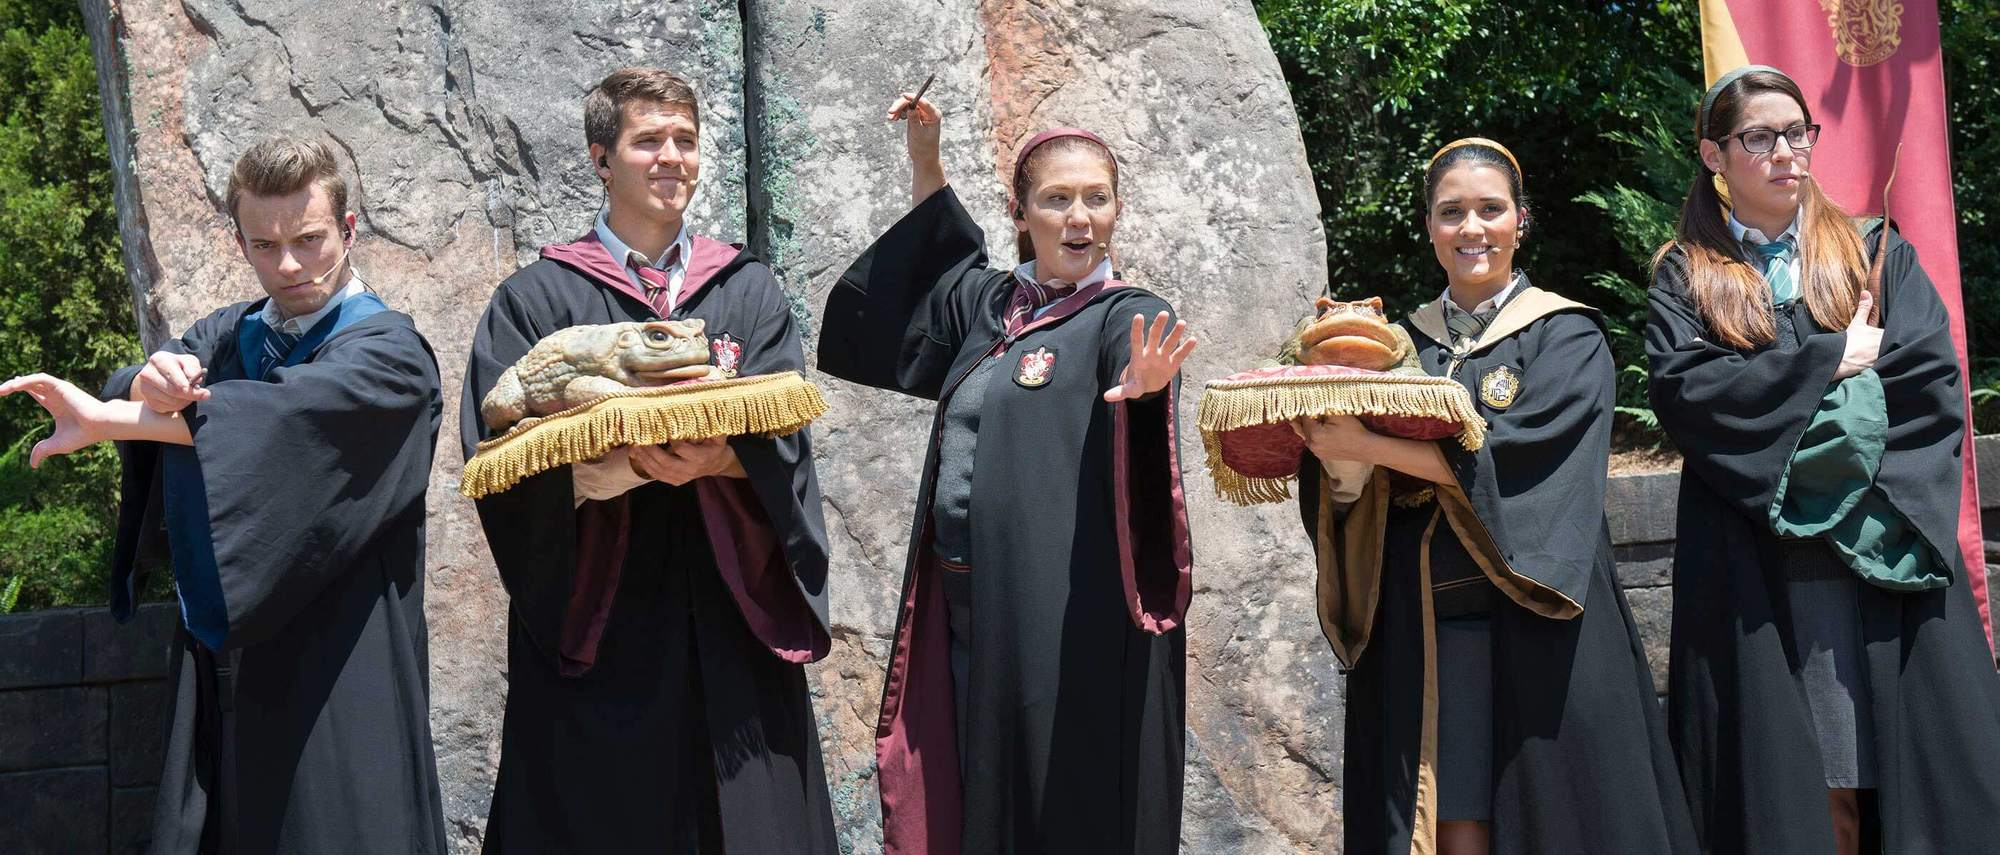 Keep your eyes and ears open for the Frog Choir at Harry Potter Universal Studios